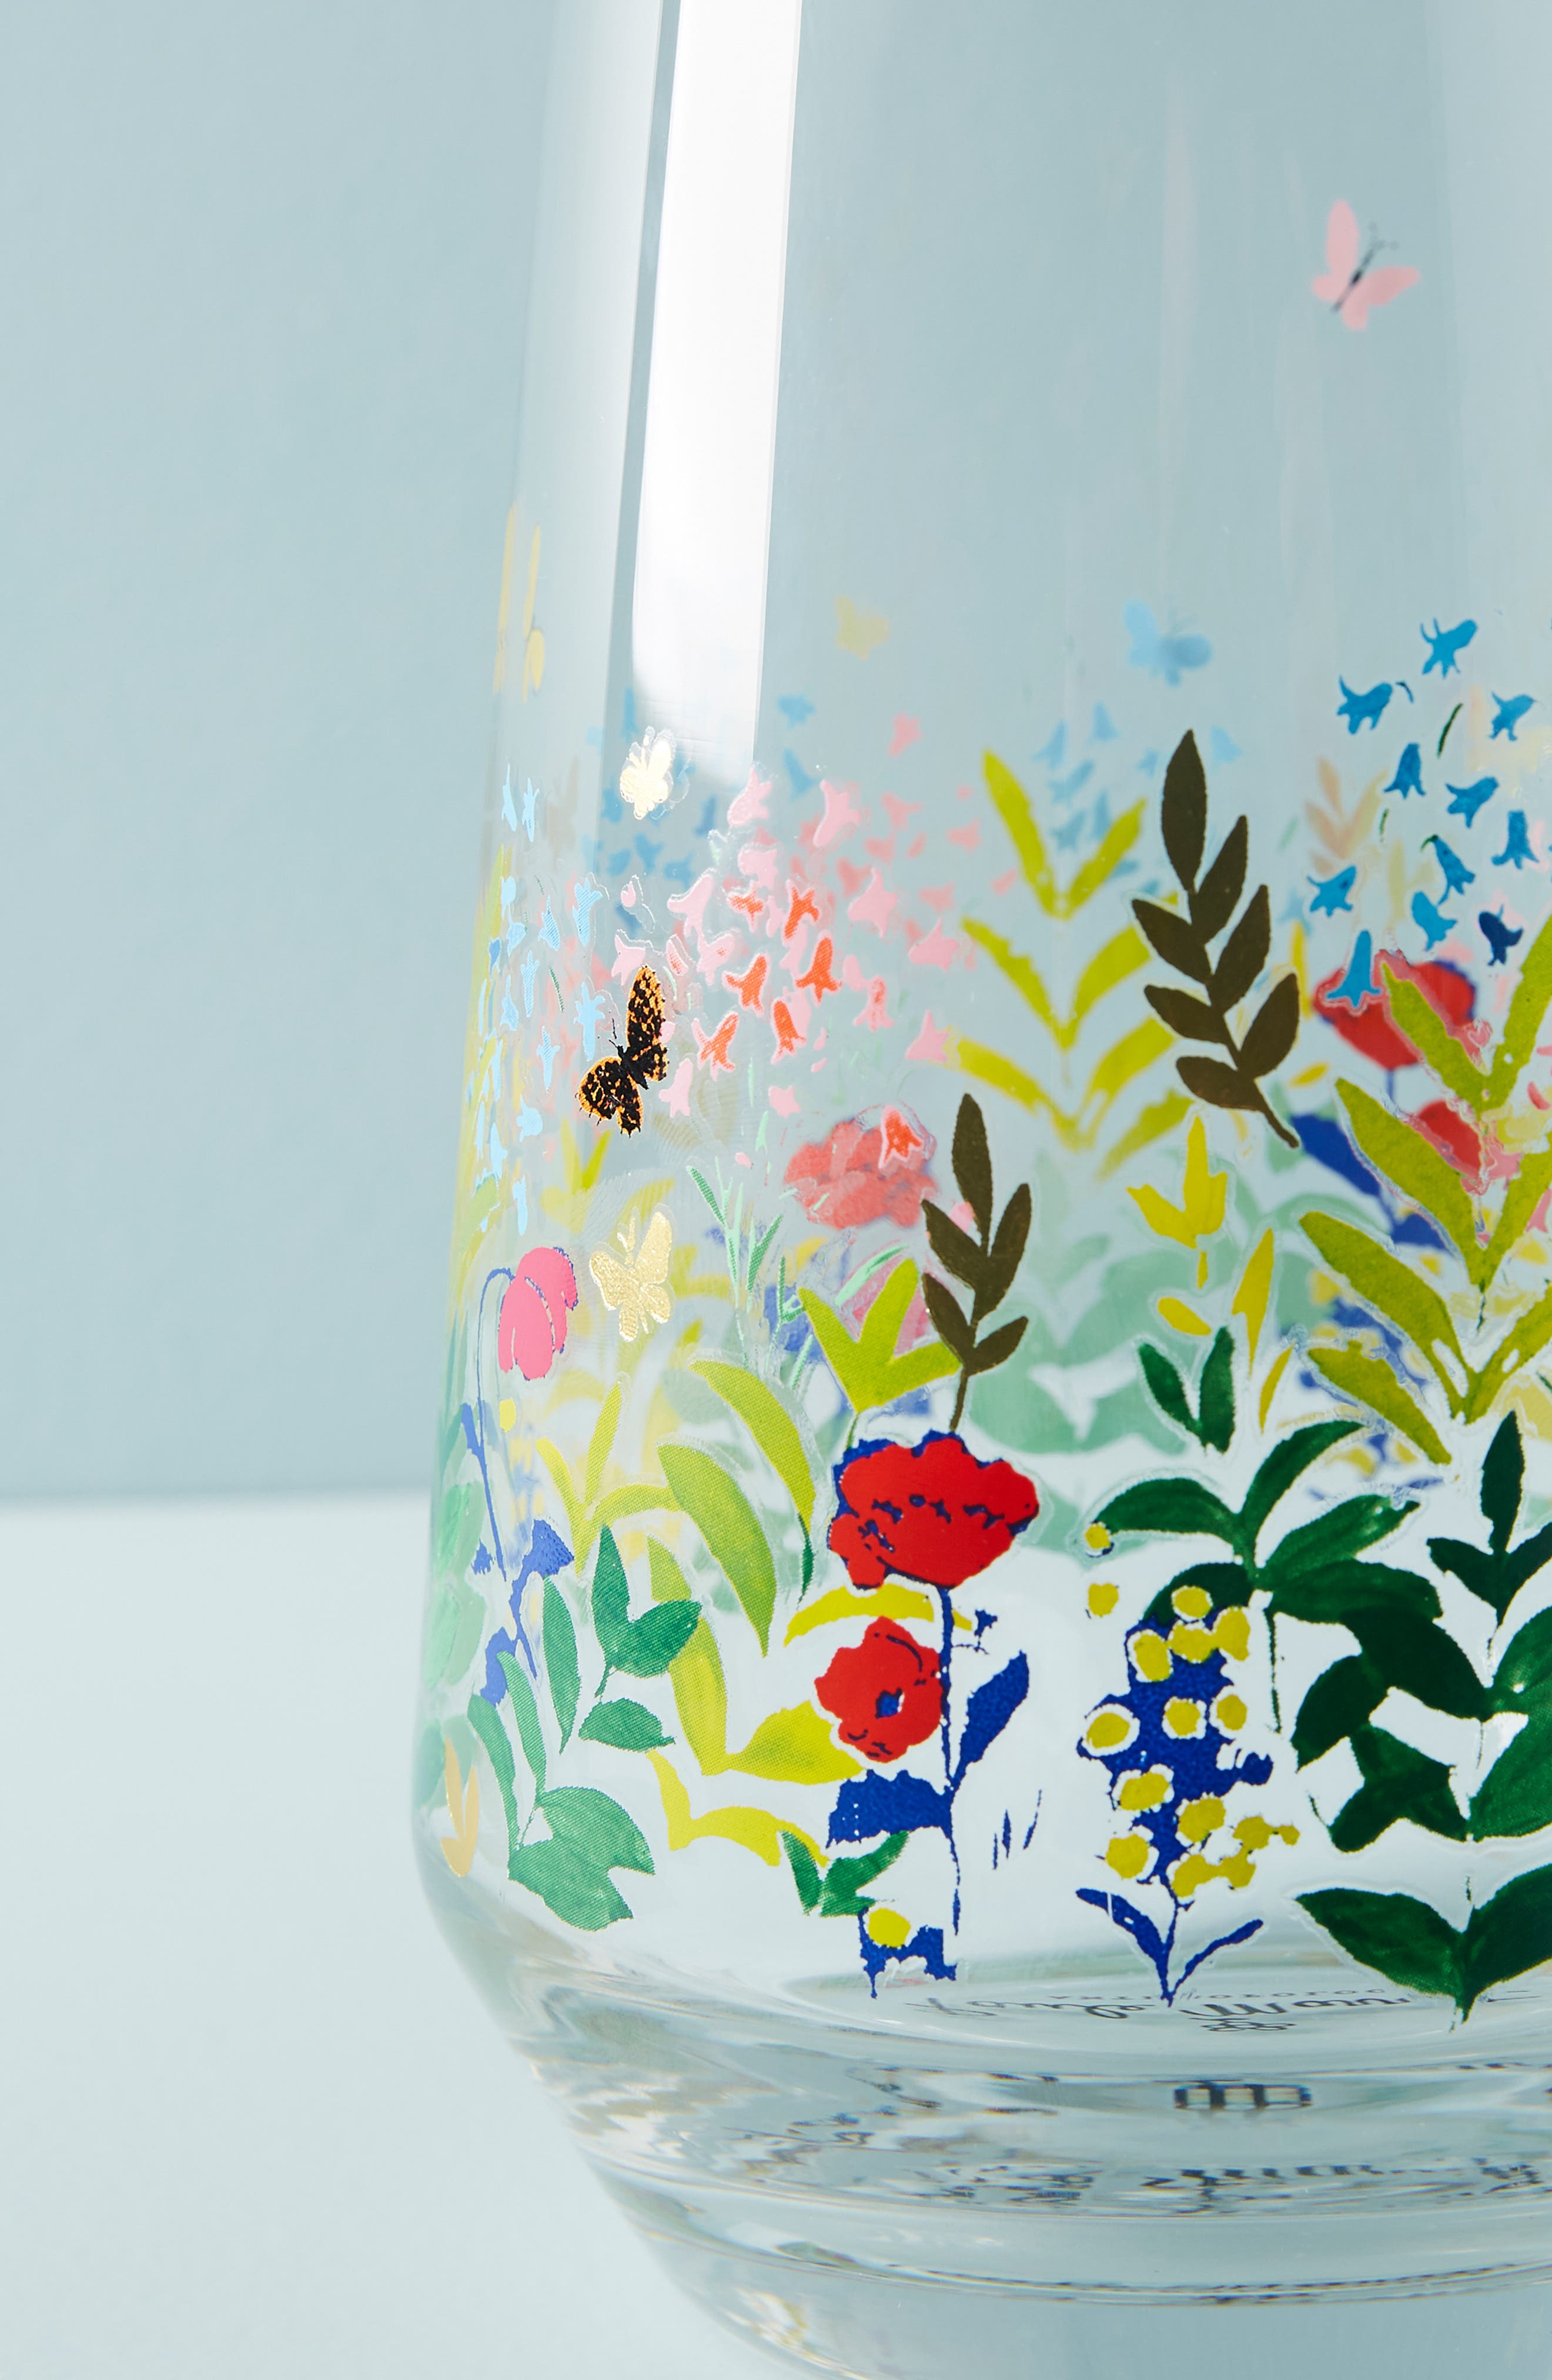 ANTHROPOLOGIE,                             Paule Marrot Garden Carafe,                             Alternate thumbnail 3, color,                             CLEAR